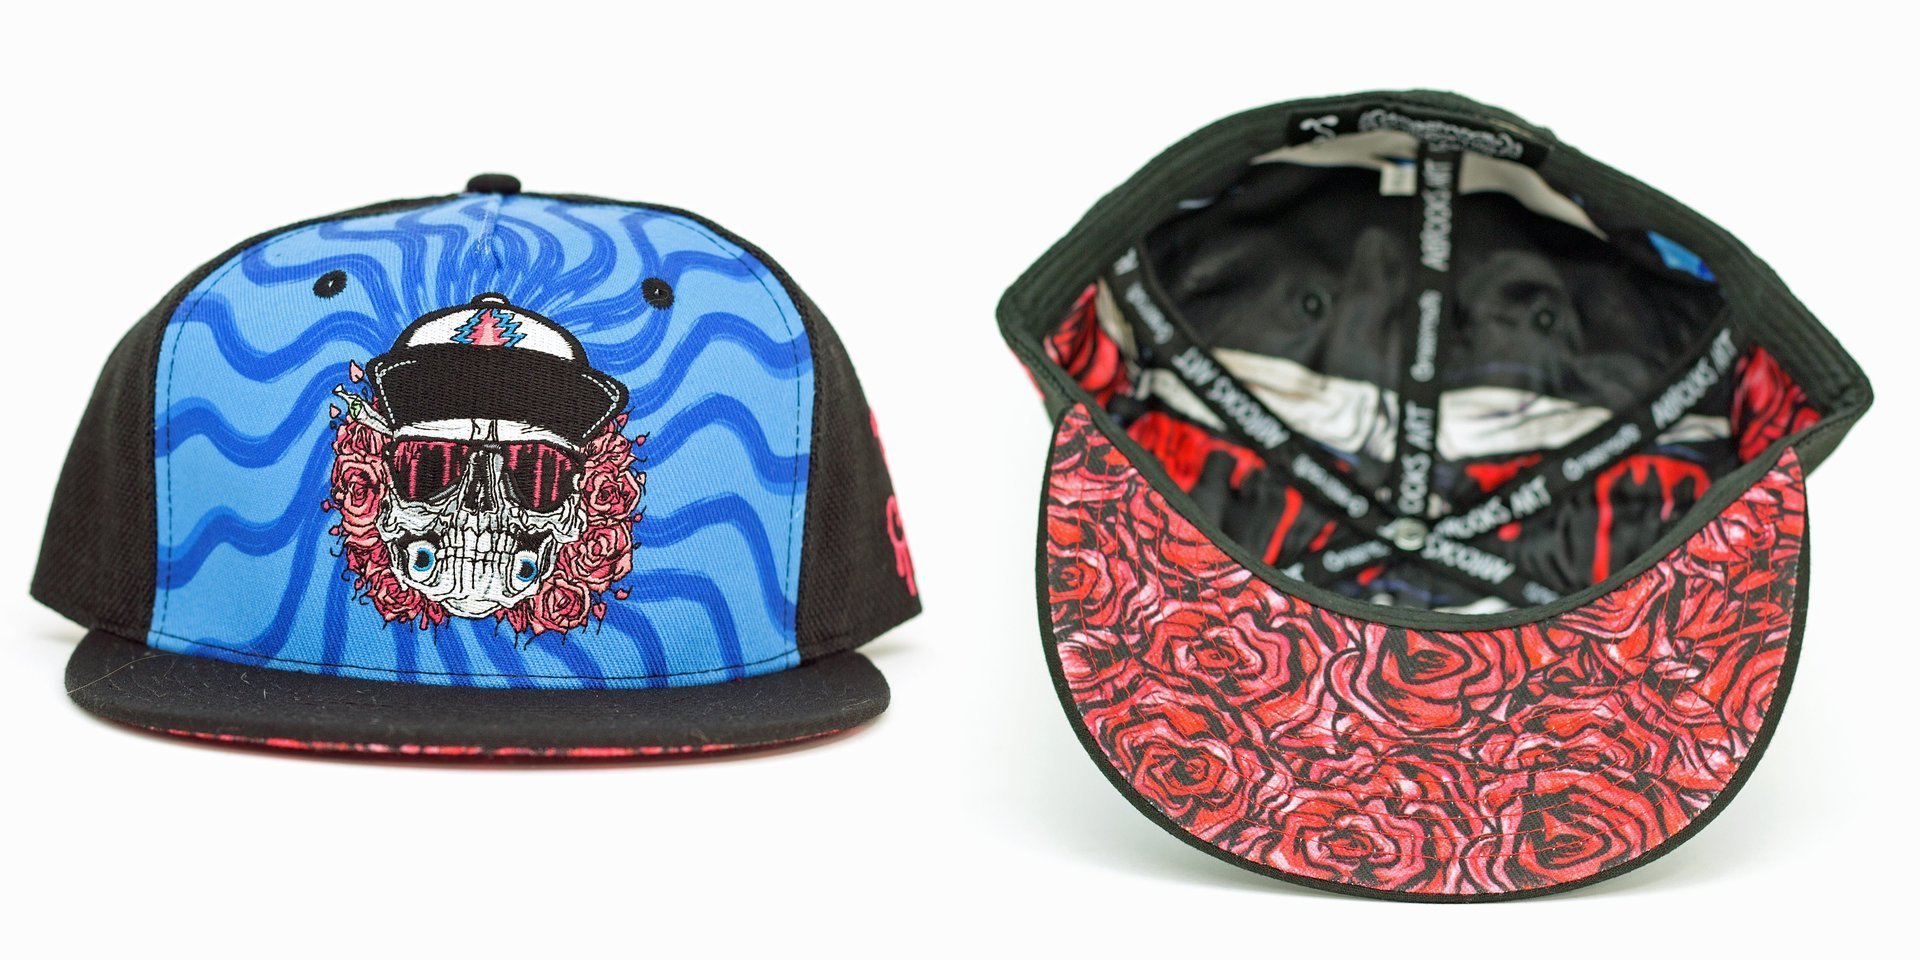 Aaron Brooks Eazy E Rider Fitted Grassroots California Hat